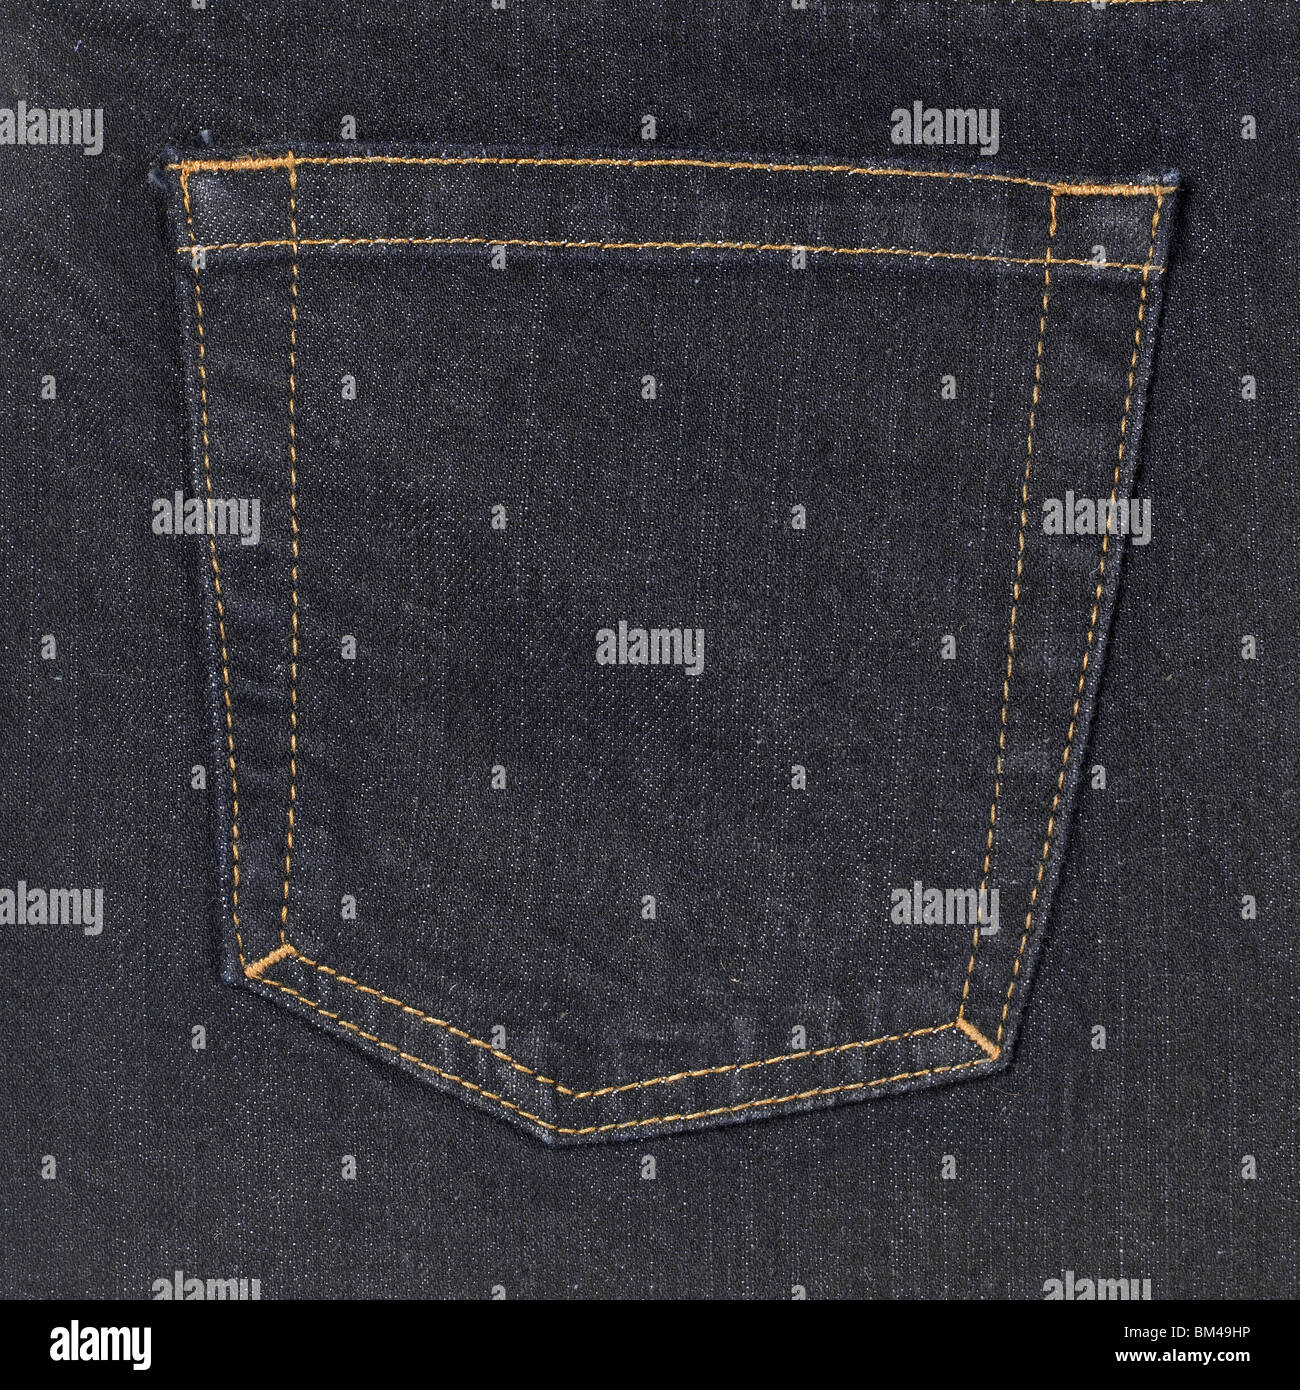 Blue jeans denim pocket - Stock Image